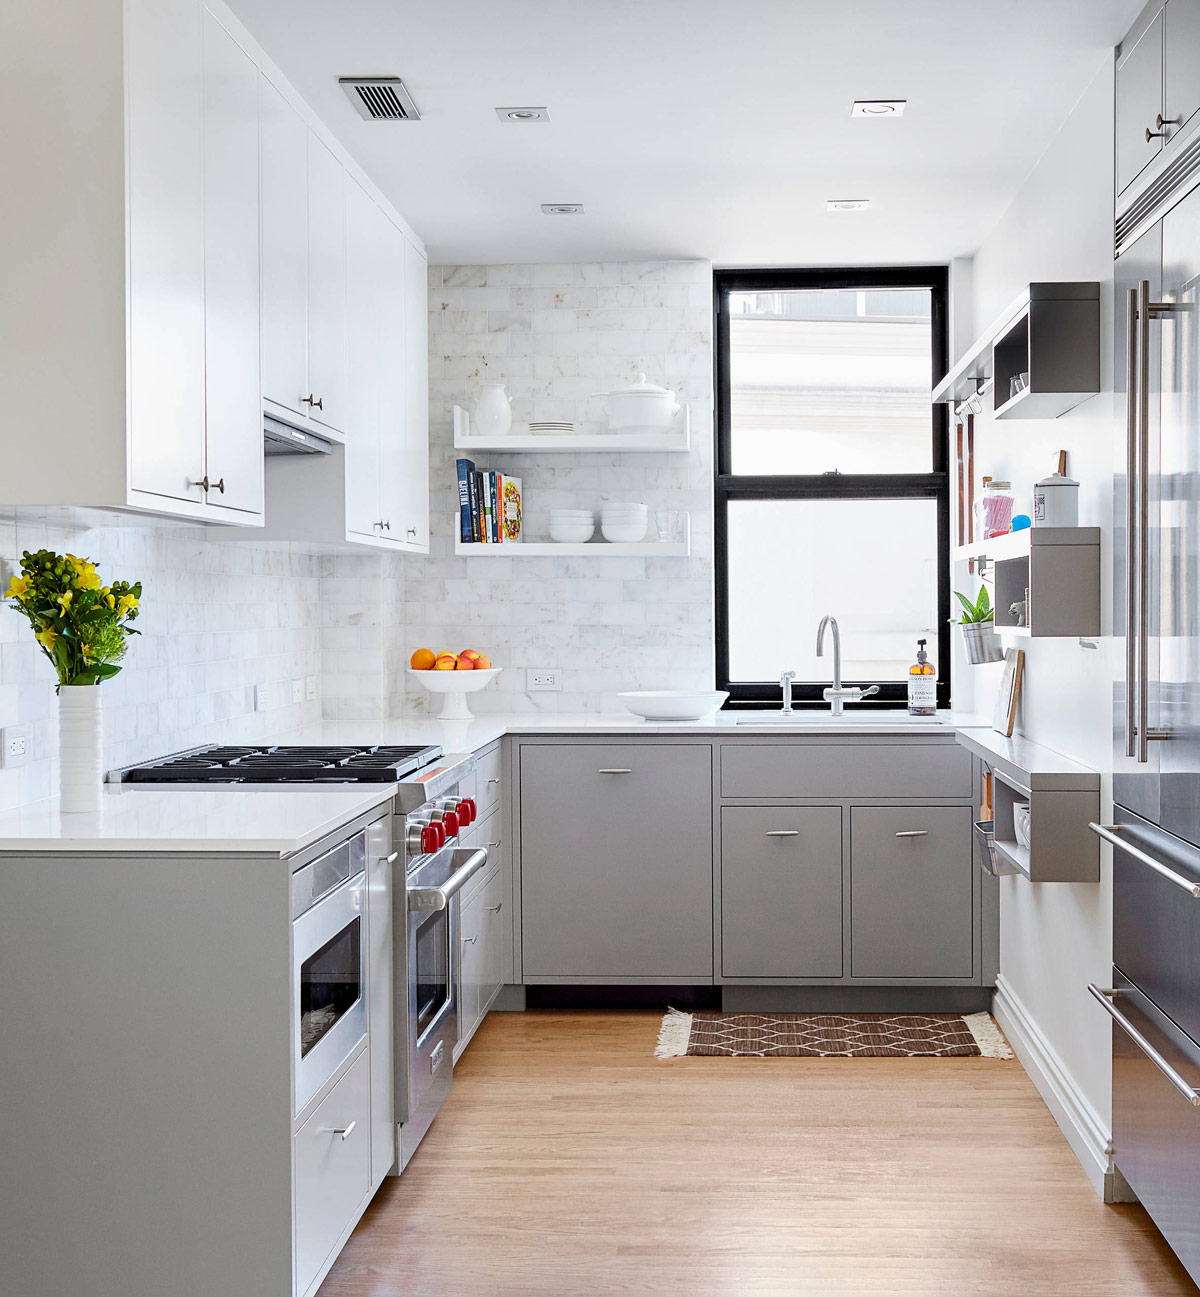 Gorgeous Grey And White Kitchens That Get Their Mix Right - Grey and white kitchen units